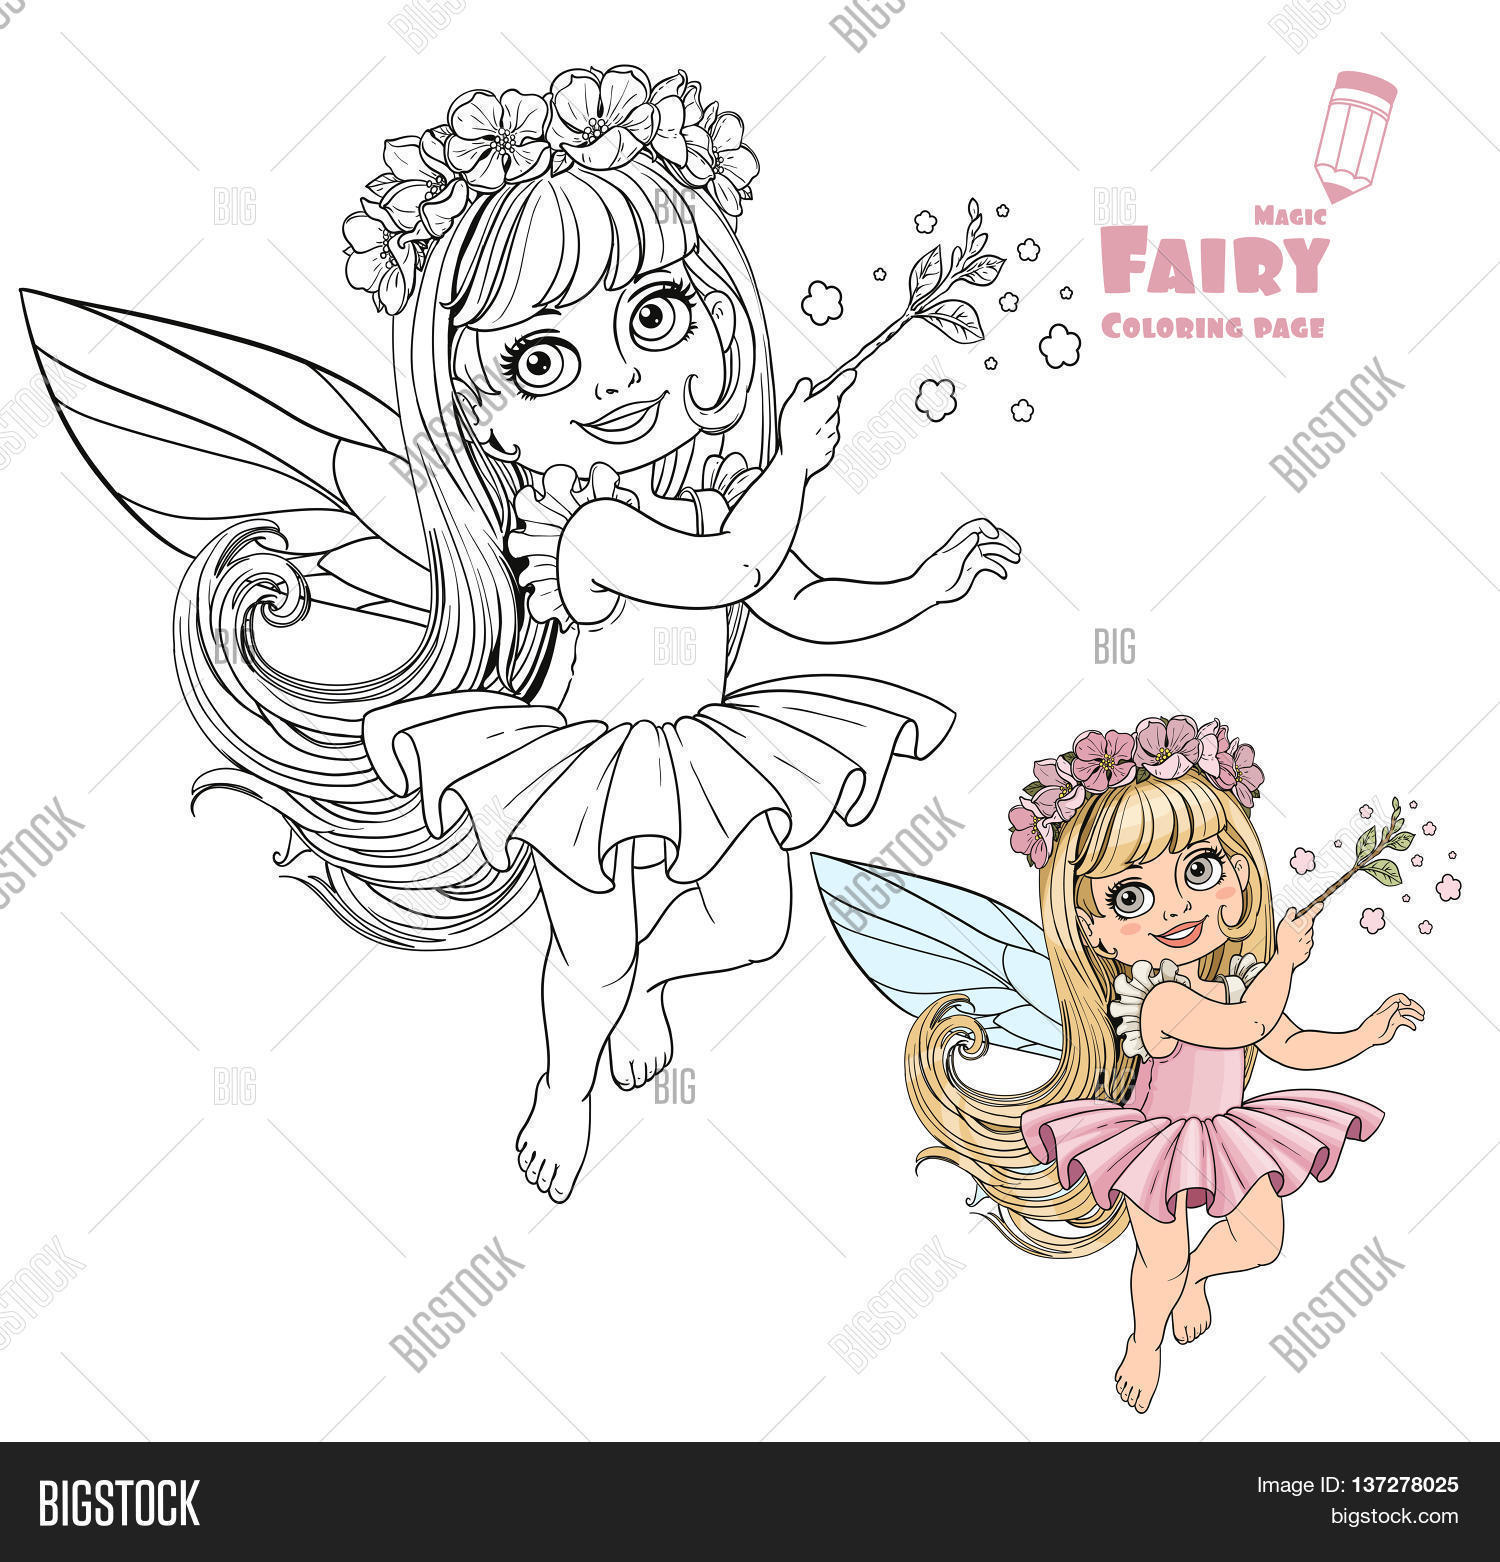 Little Spring Fairy Vector & Photo (Free Trial) | Bigstock